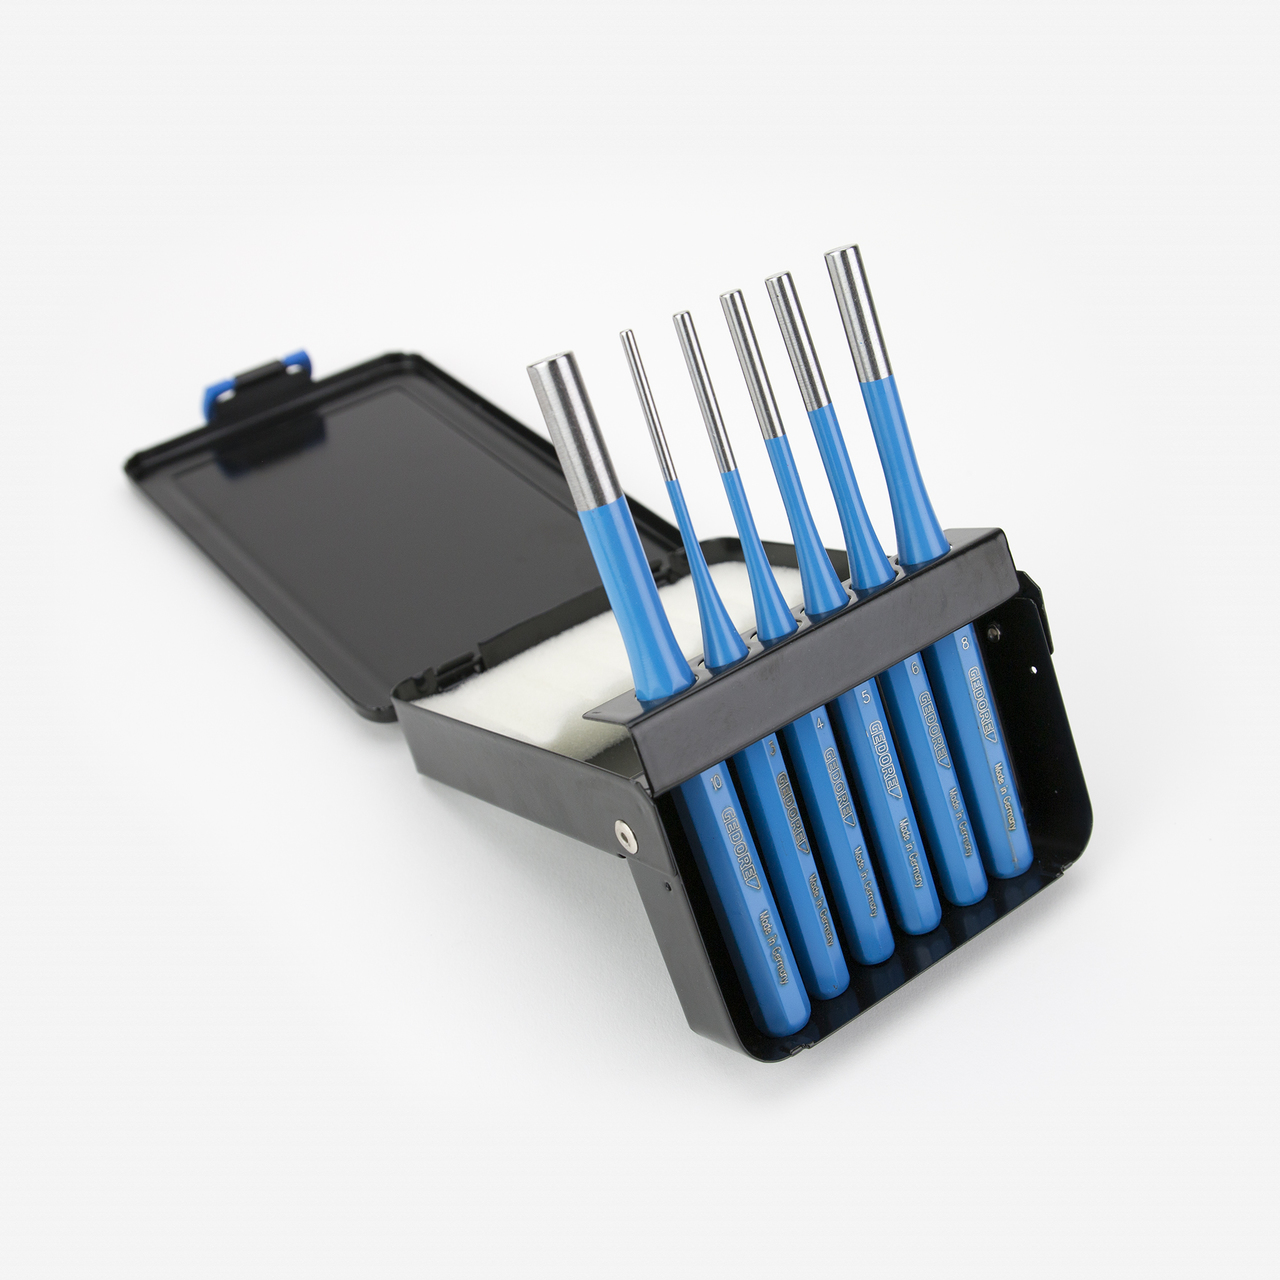 Gedore 316 D Pin Punch Set 6 Pcs in Metal Case - KC Tool